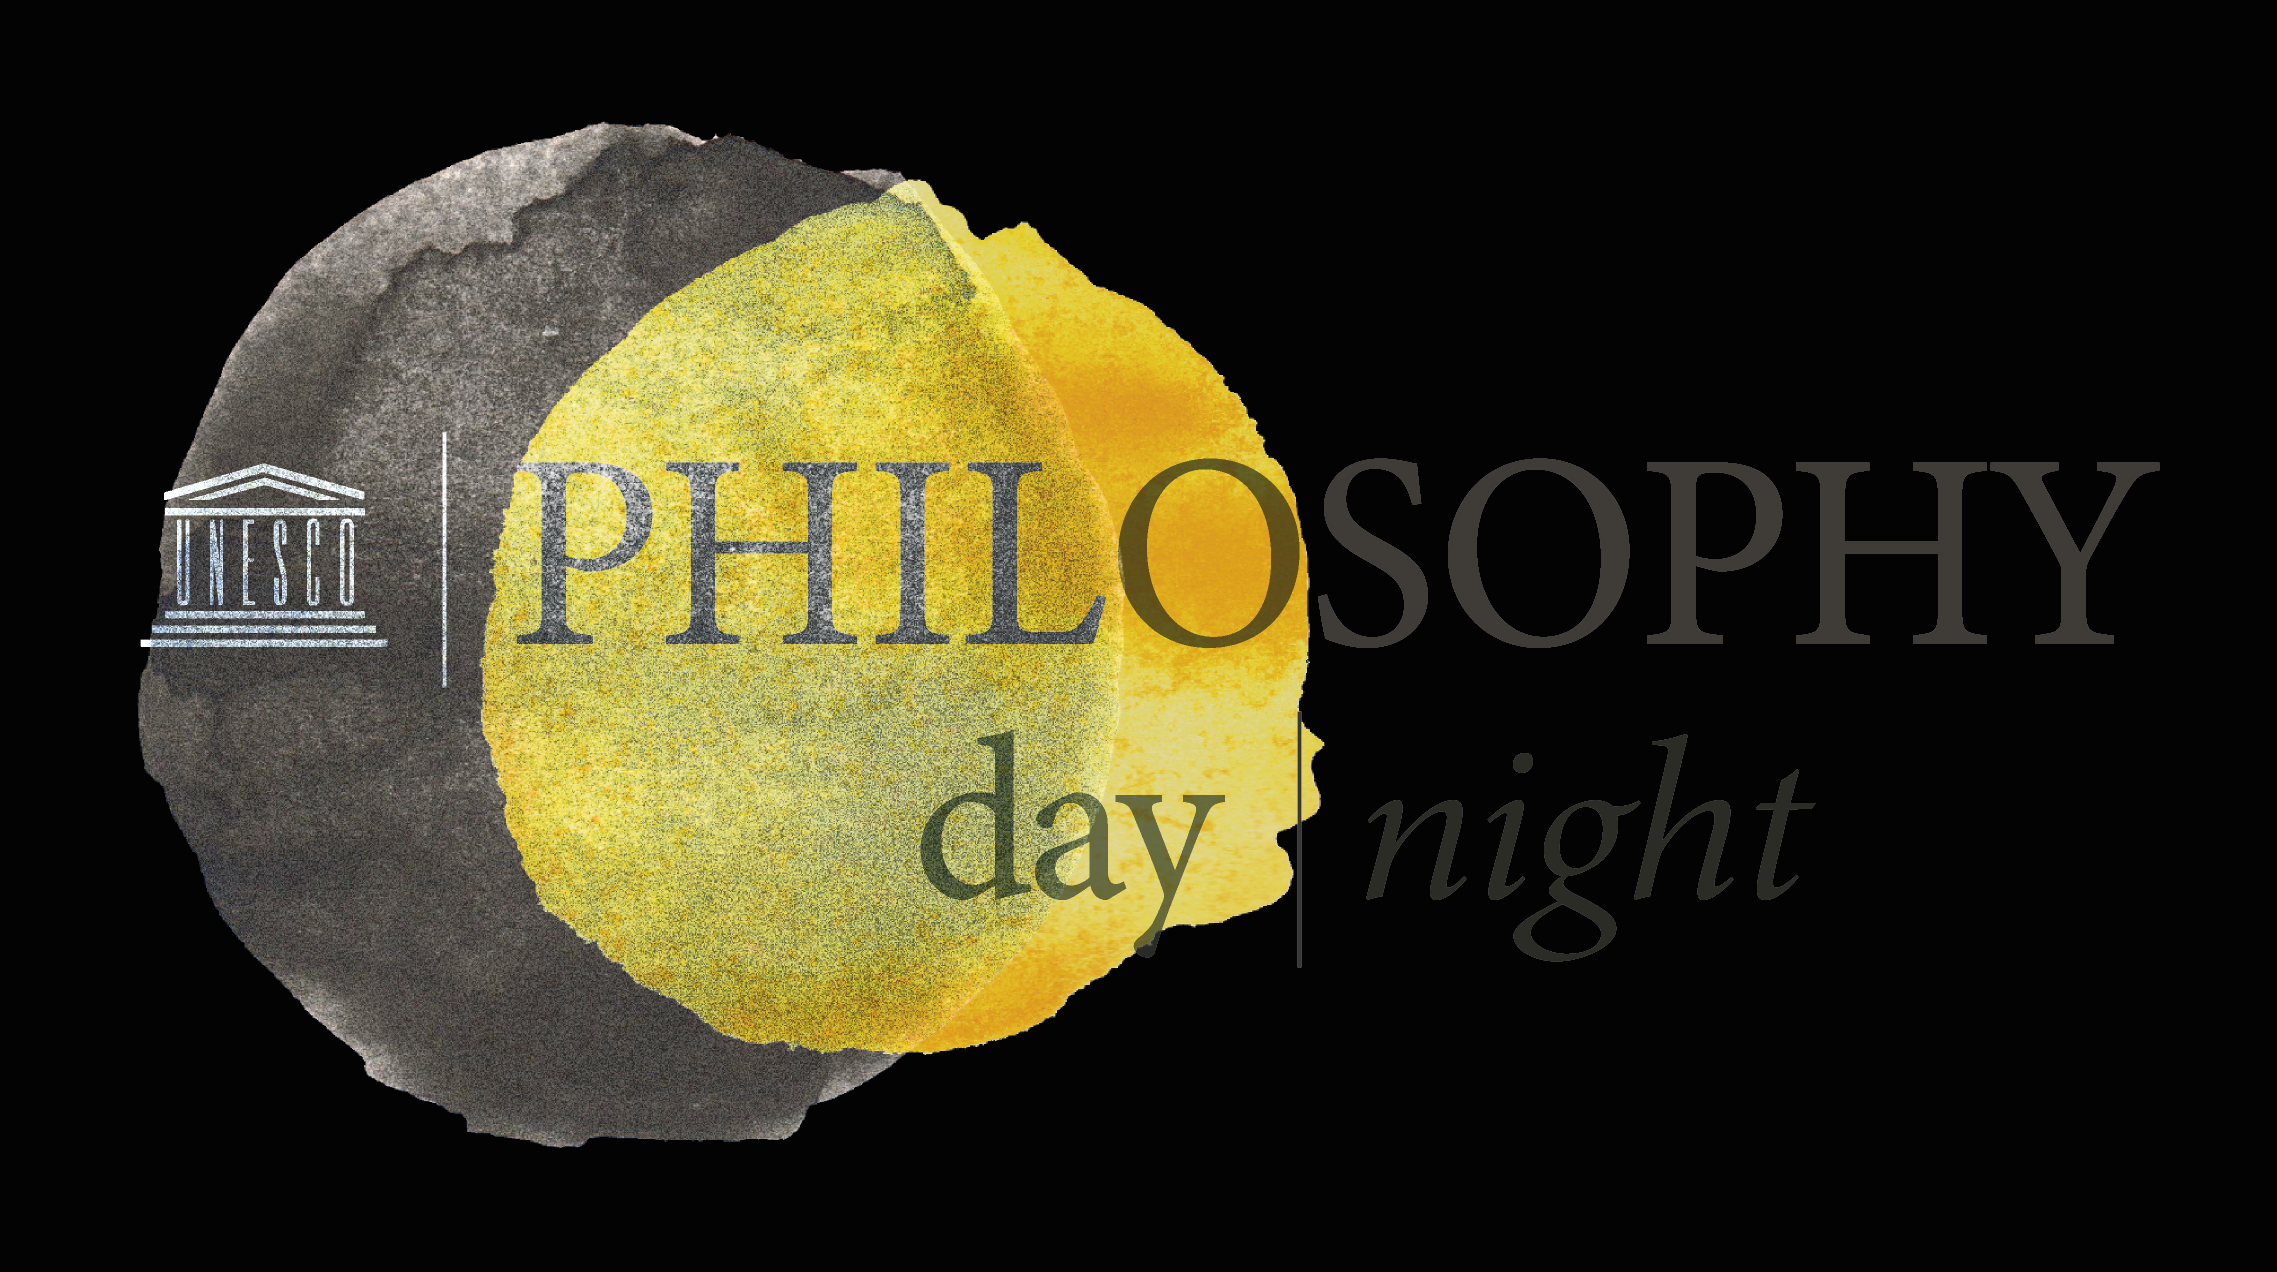 UNESCO Philosophy Day/Night